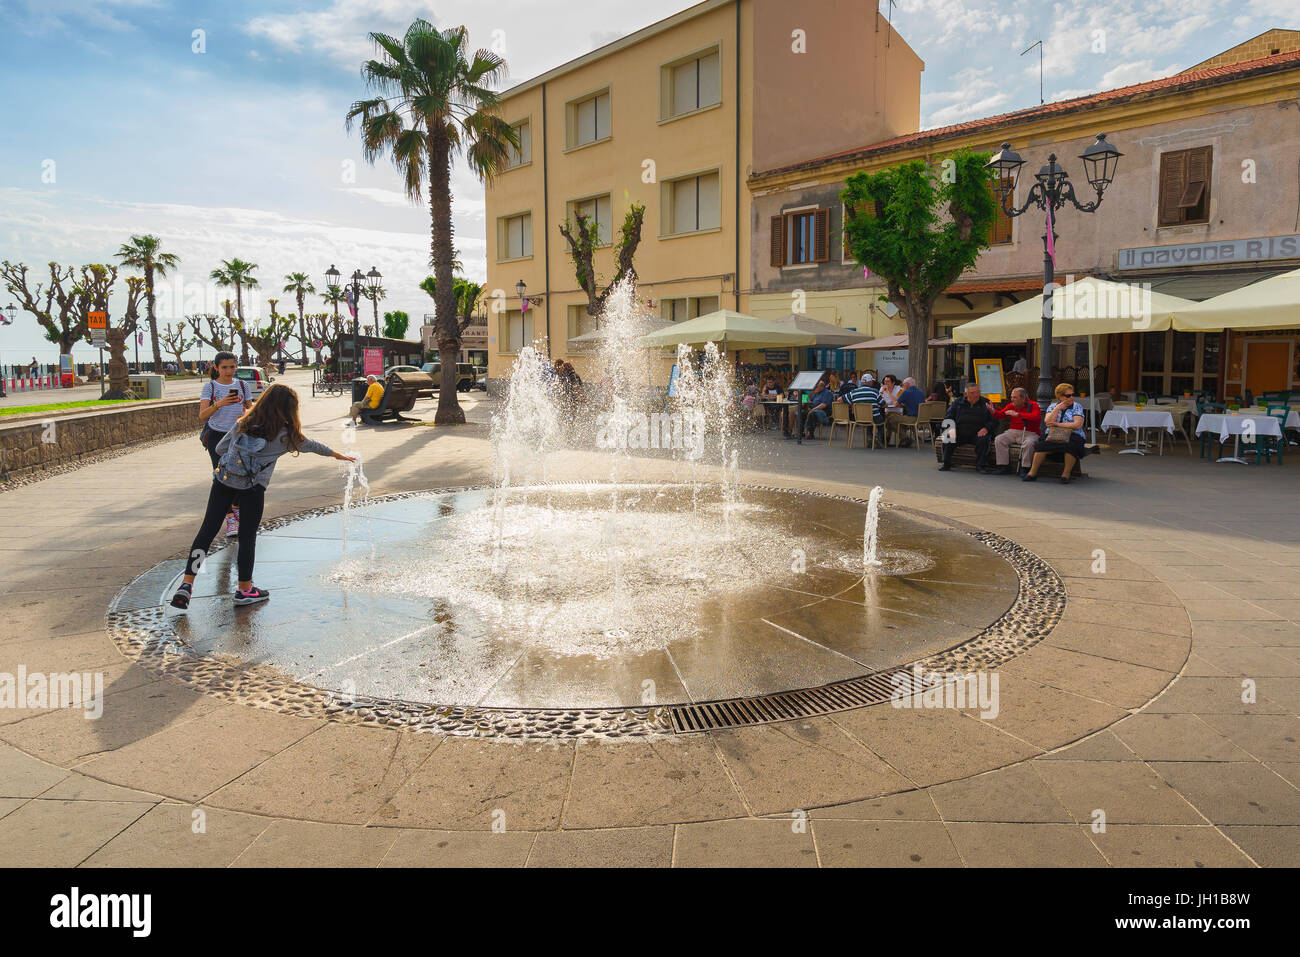 Alghero Sardinia, the Piazza Sulis lies between the historical old town quarter and the seafront in Alghero, Sardinia. - Stock Image